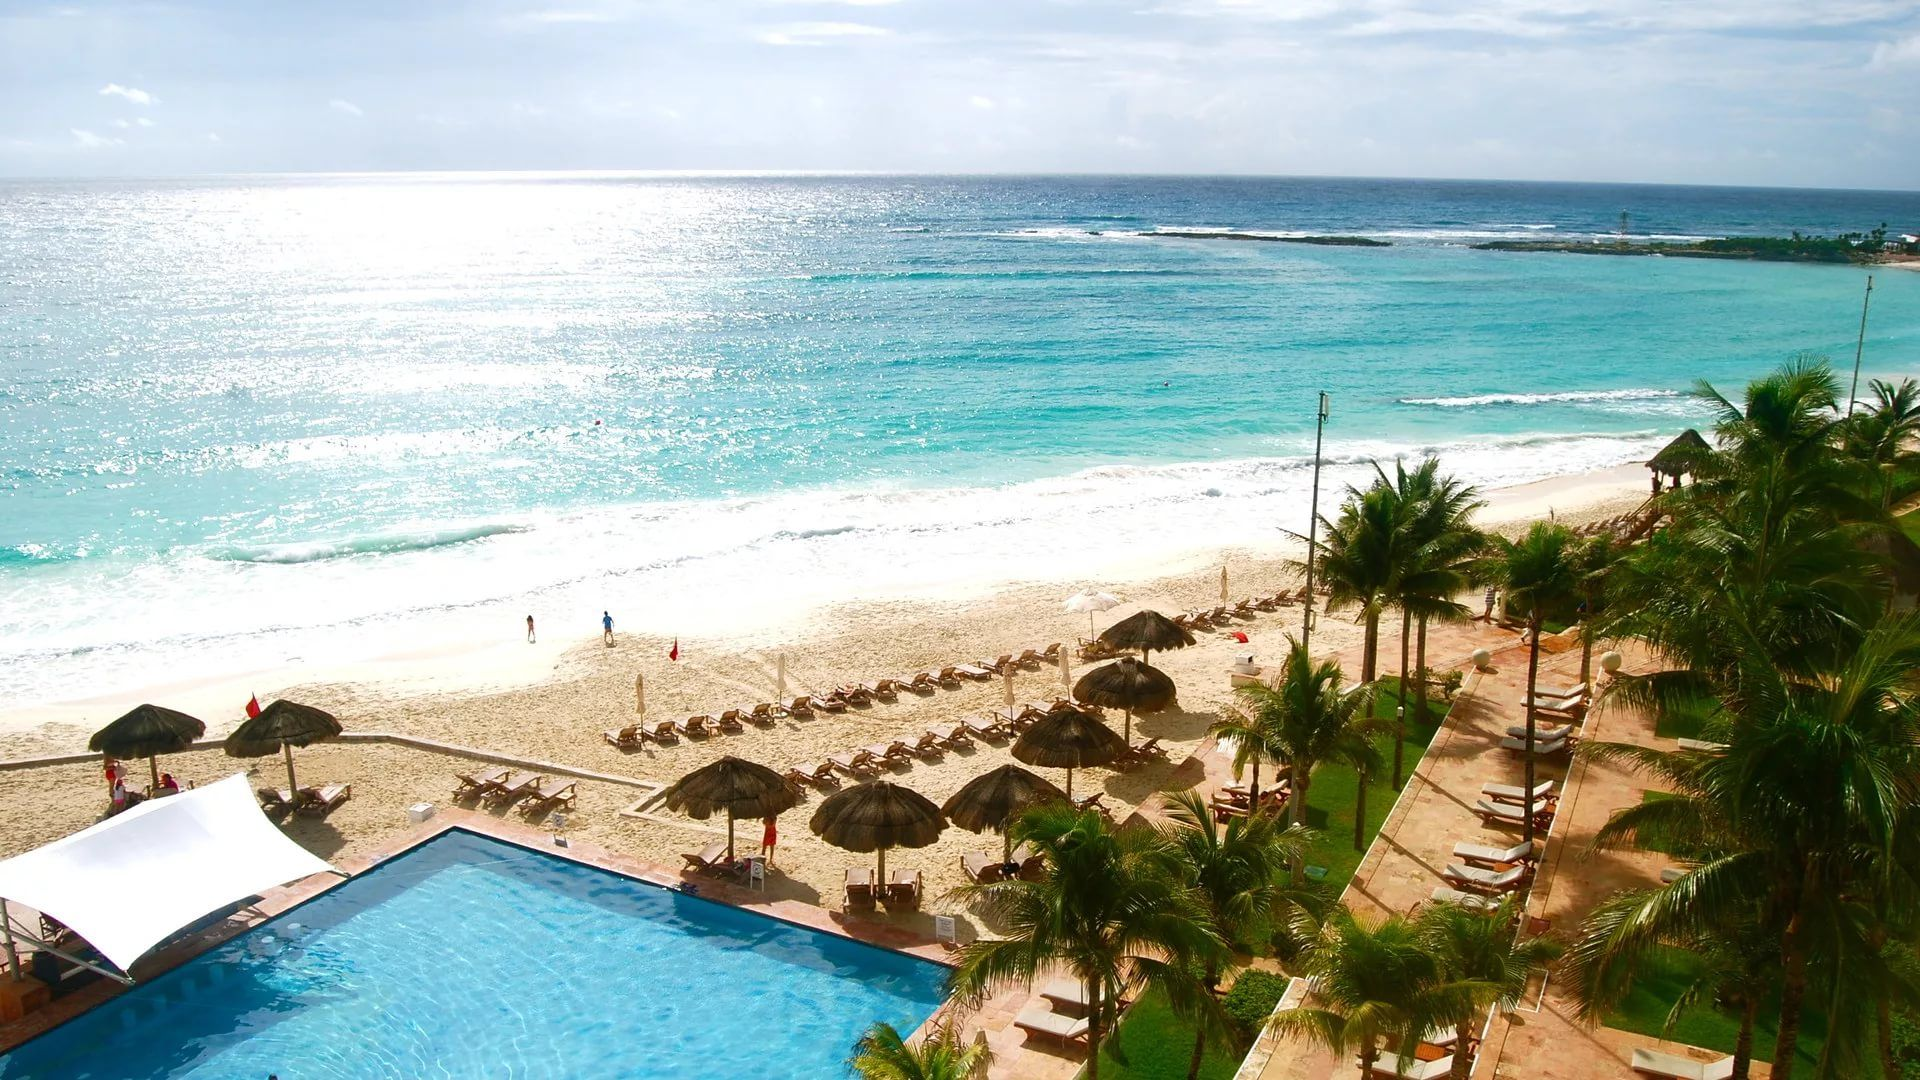 Cancun Mexico free download wallpaper